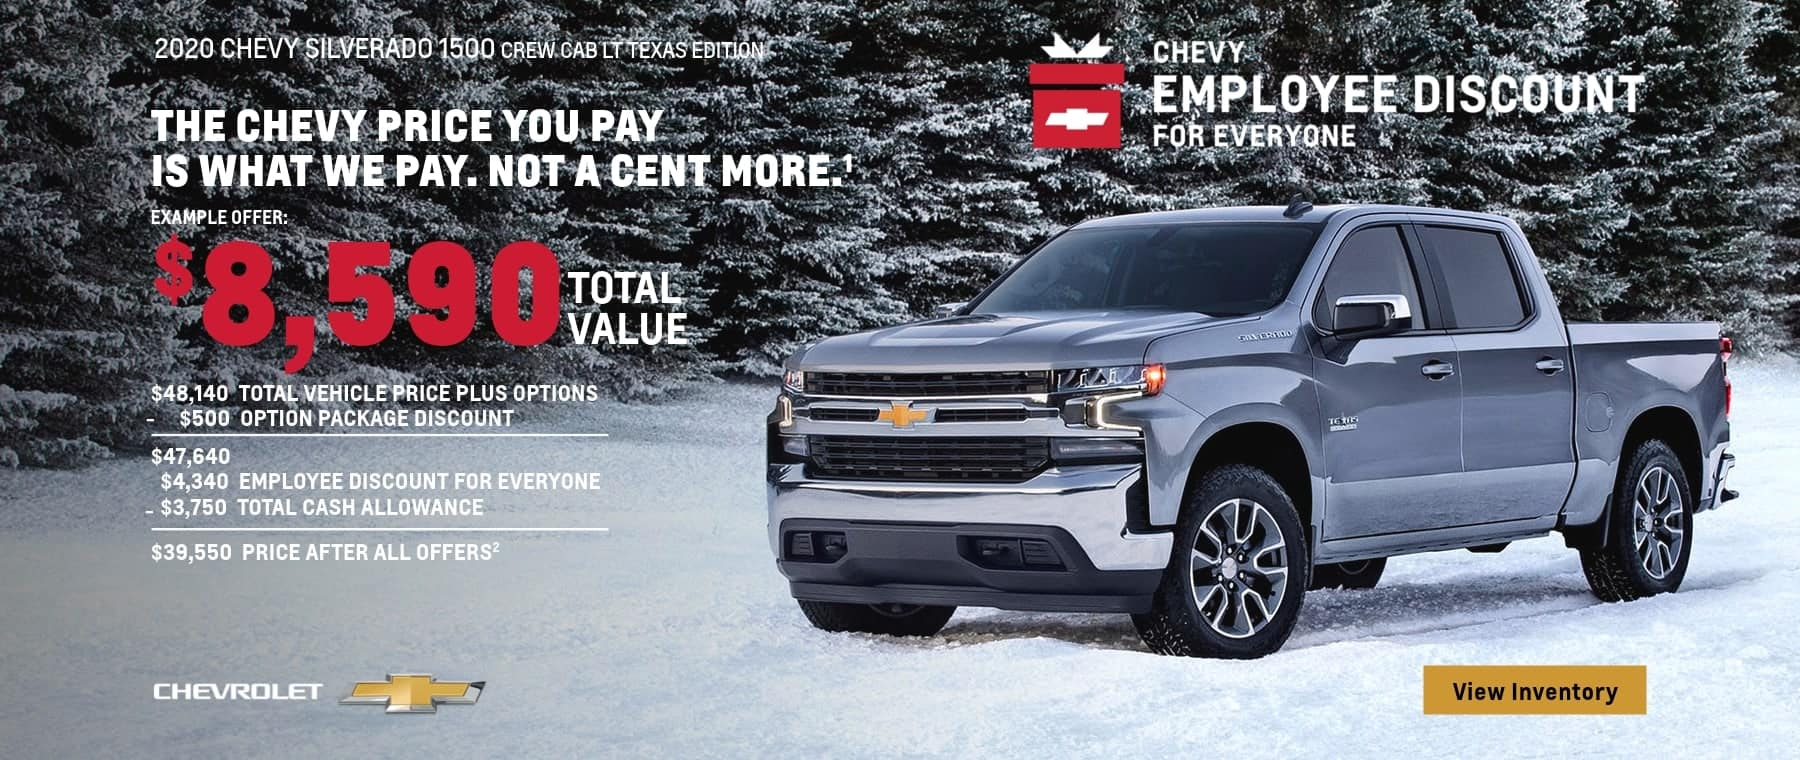 The Chevy Employee Discount For Everyone. The Chevy Price you pay is what we pay. Not a cent more. $8,590 Total Value on this 2020 Silverado 1500 Crew Cab Texas Edition.